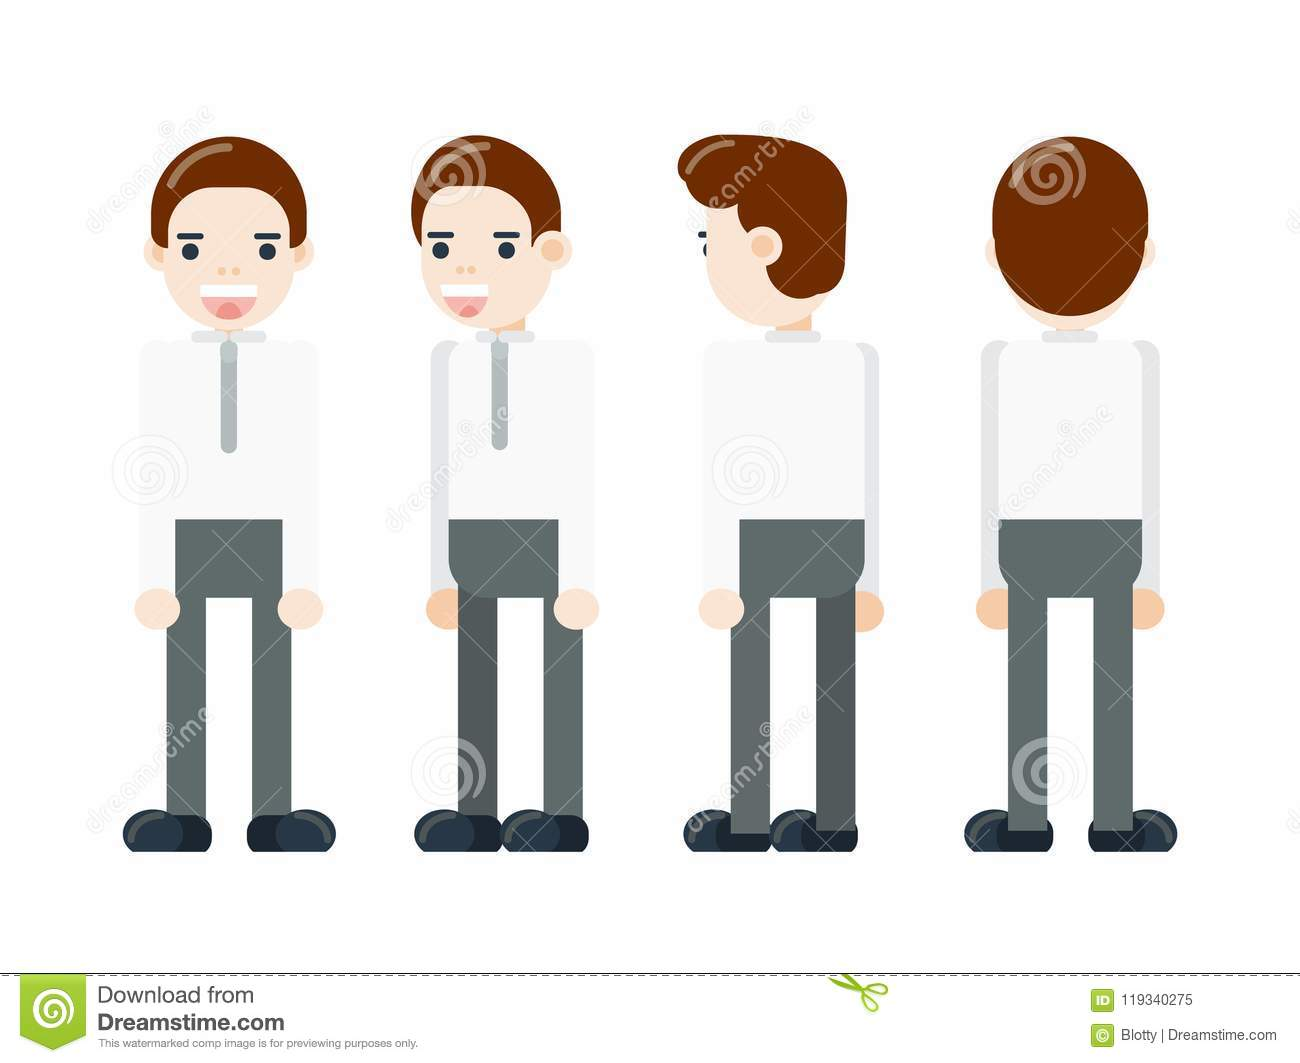 Portrait of a Businessman in full-length from different angles. Character for rigging and animation.